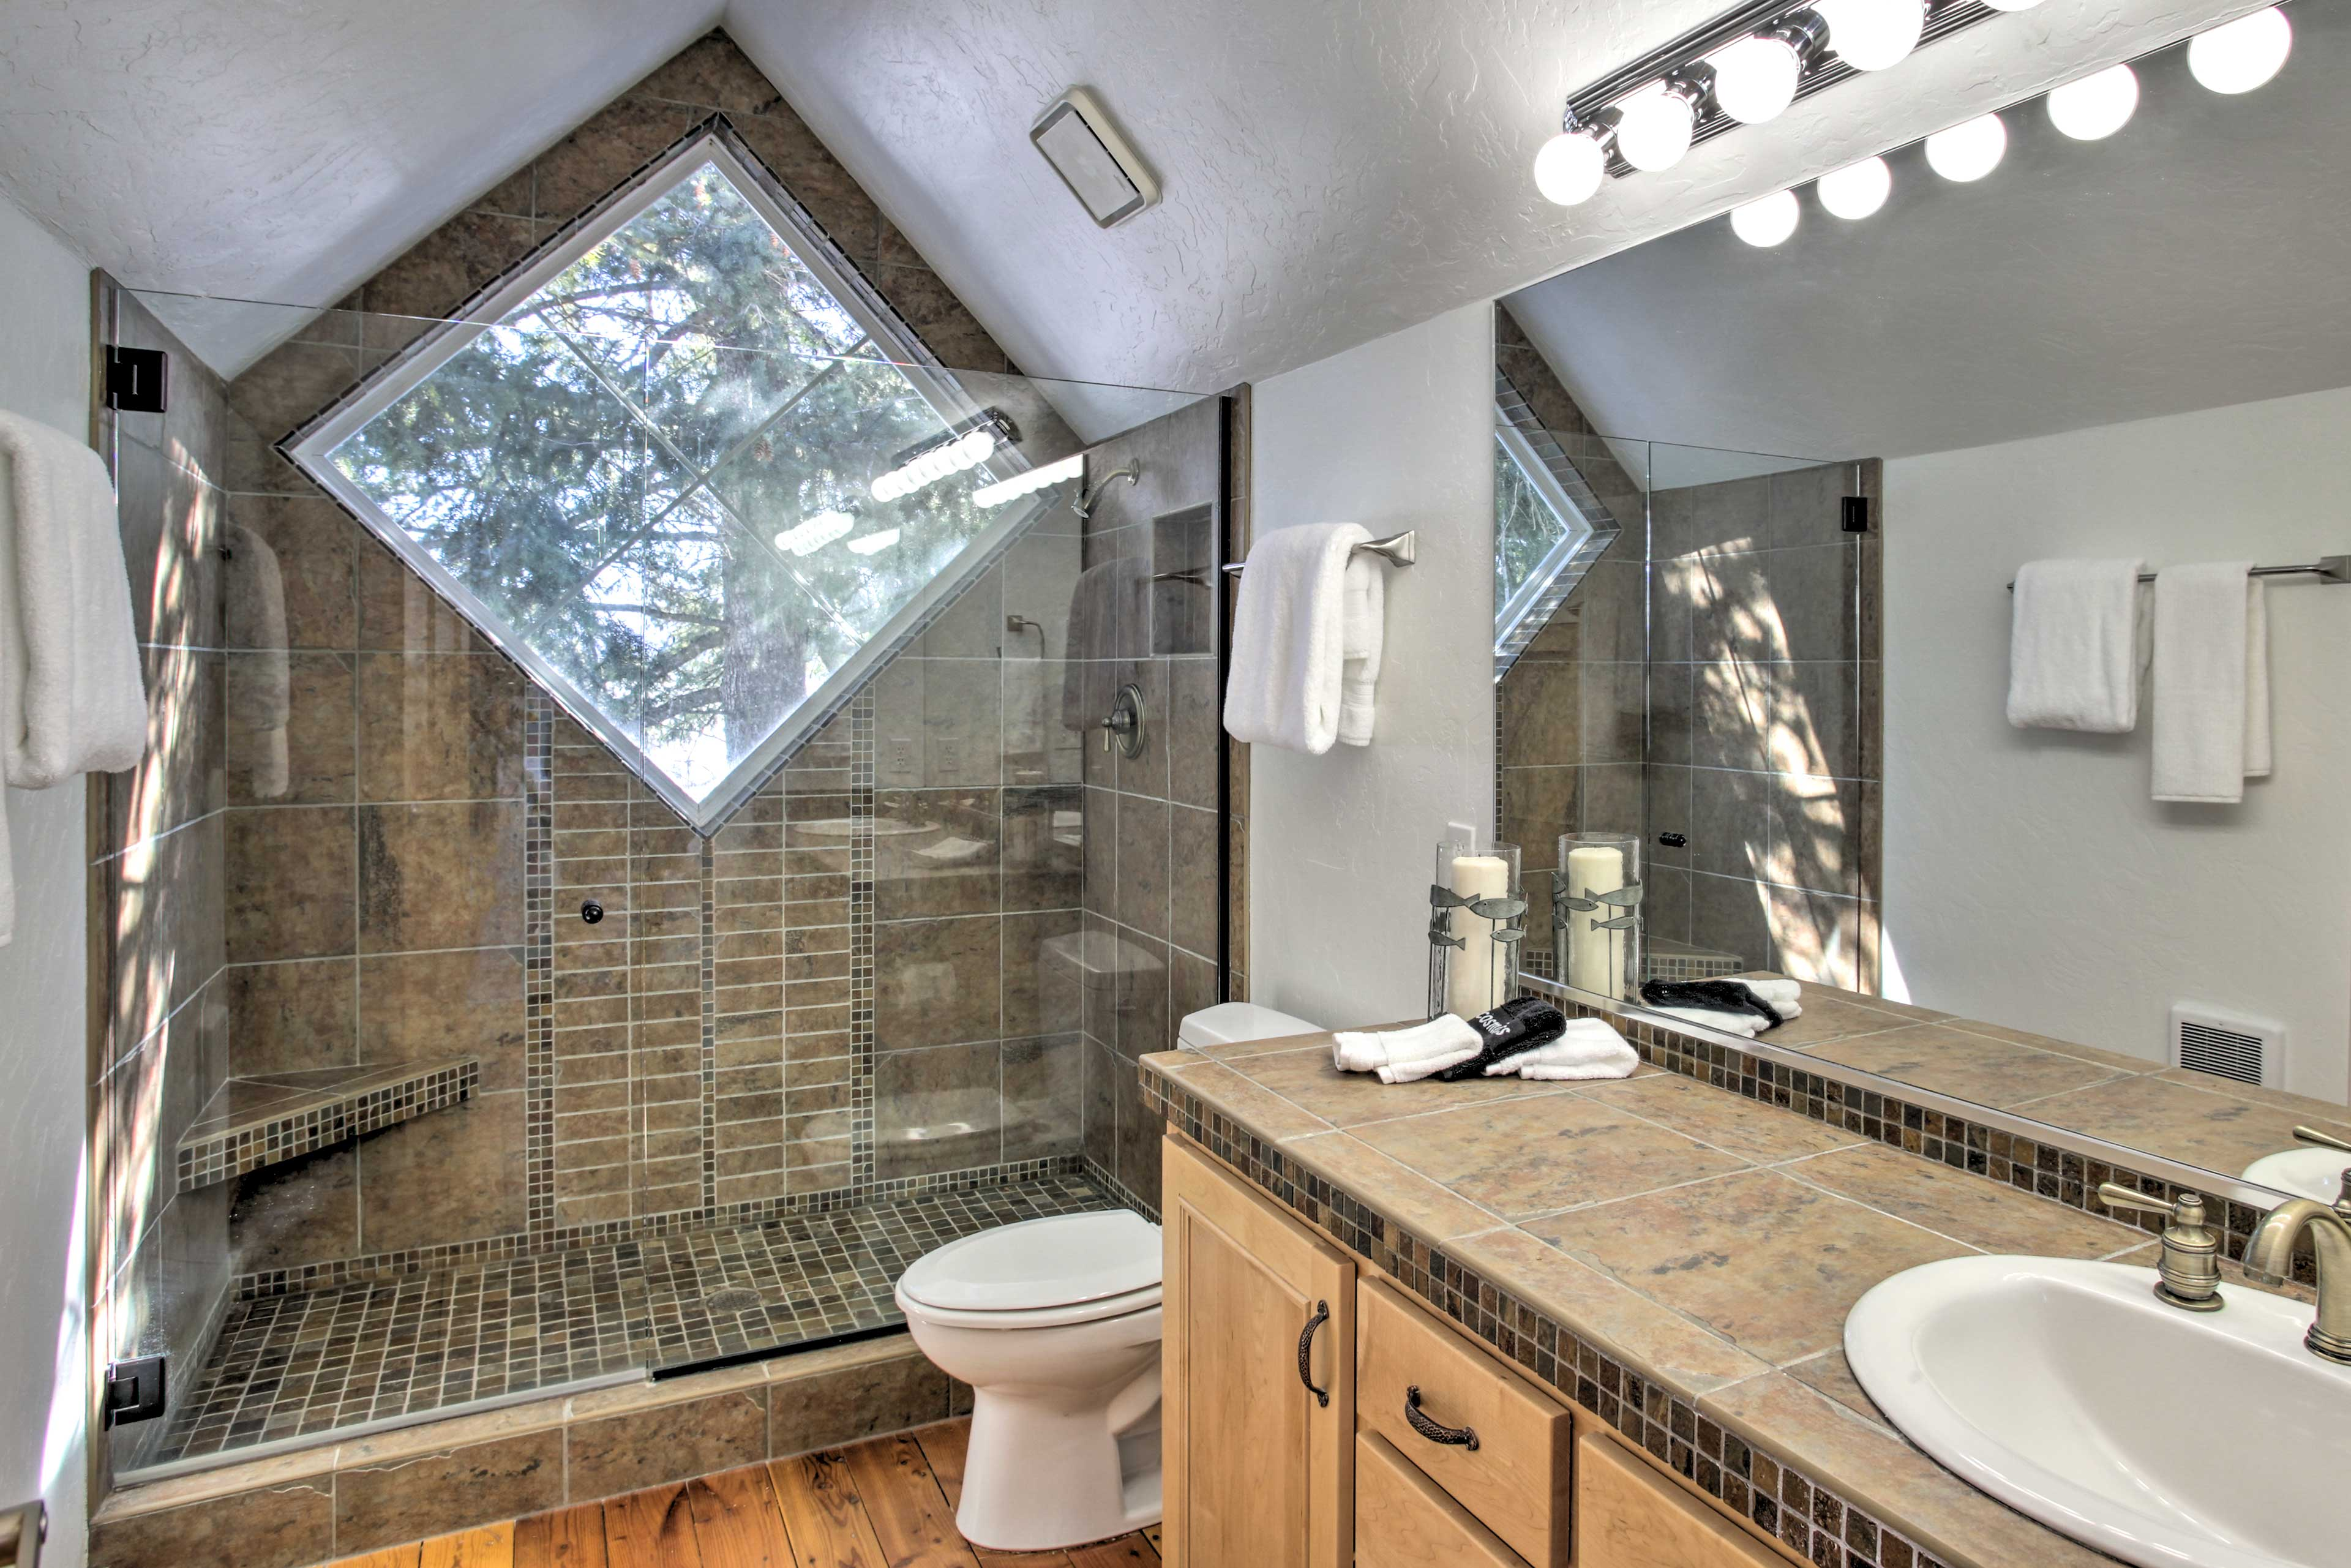 This full en-suite bathroom features a spacious walk-in shower.